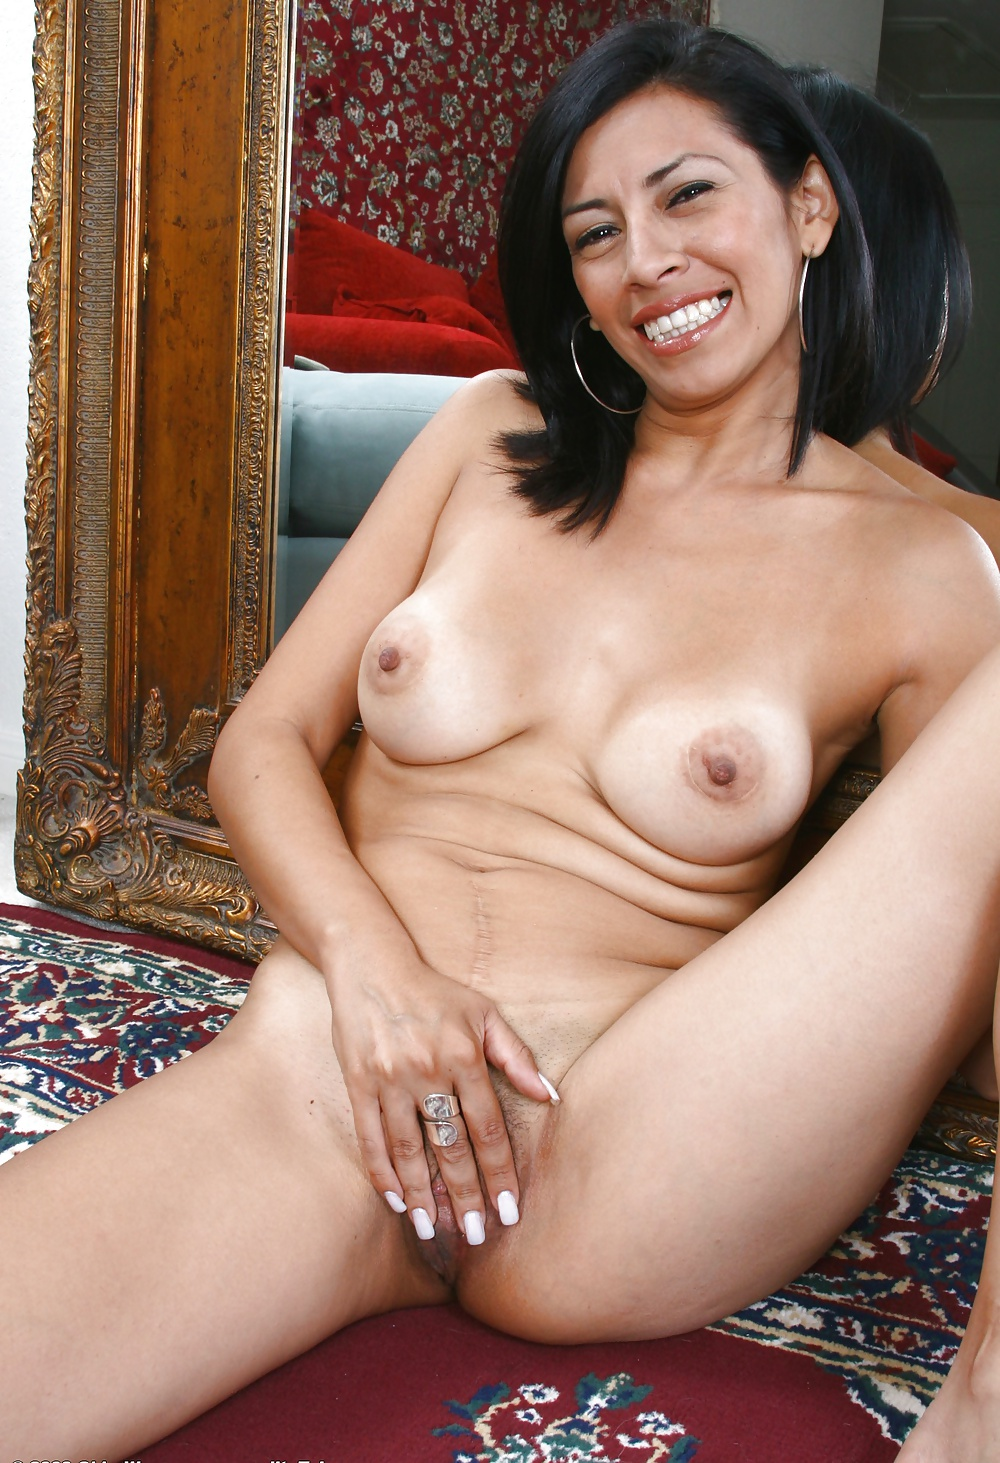 middle-aged-latina-women-nude